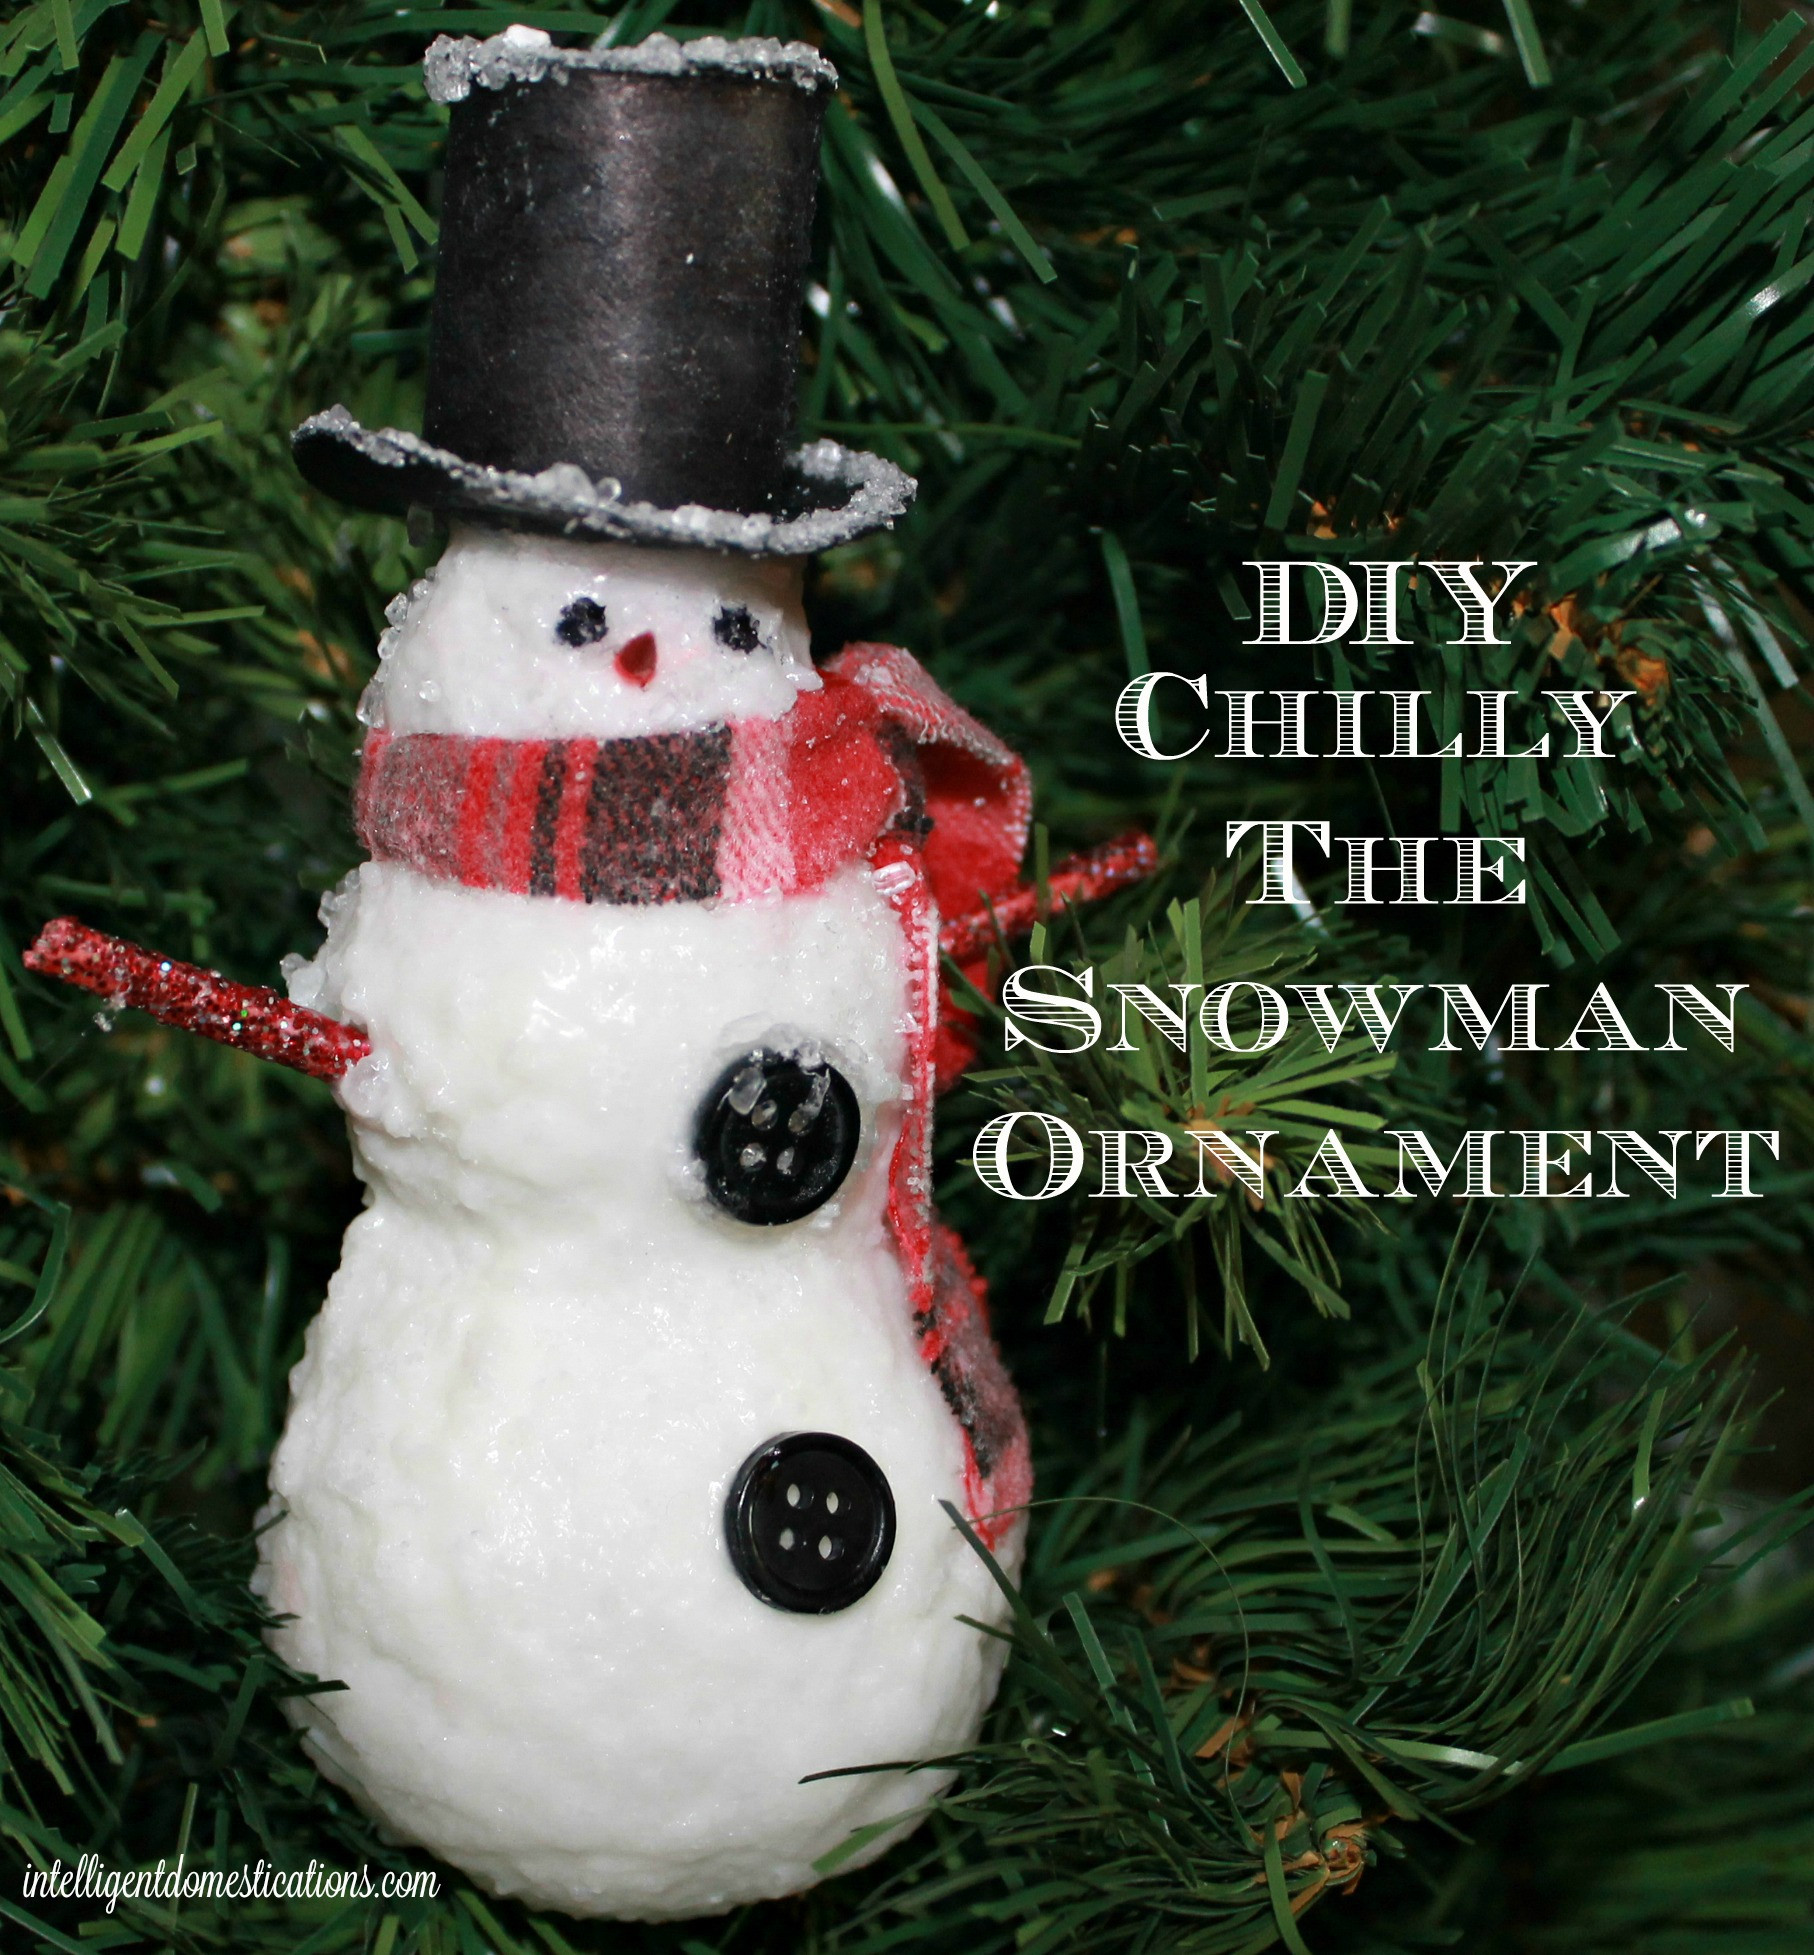 Best ideas about DIY Snowman Ornaments . Save or Pin DIY Chilly The Snowman Ornament Now.